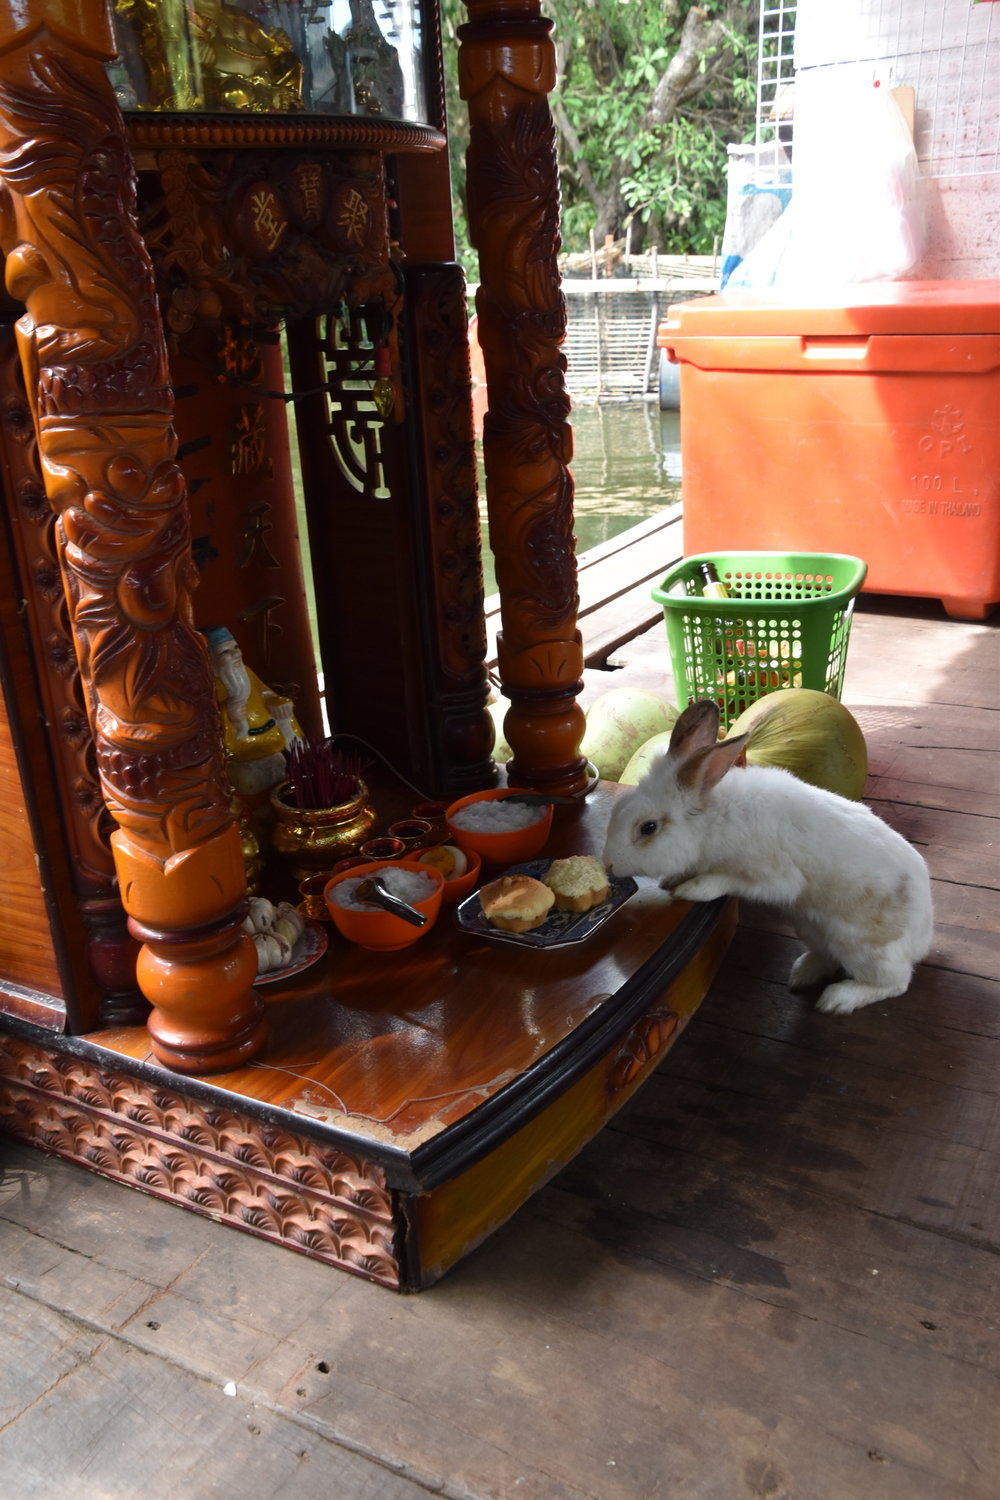 This bunny was helping himself to the offerings on the altar